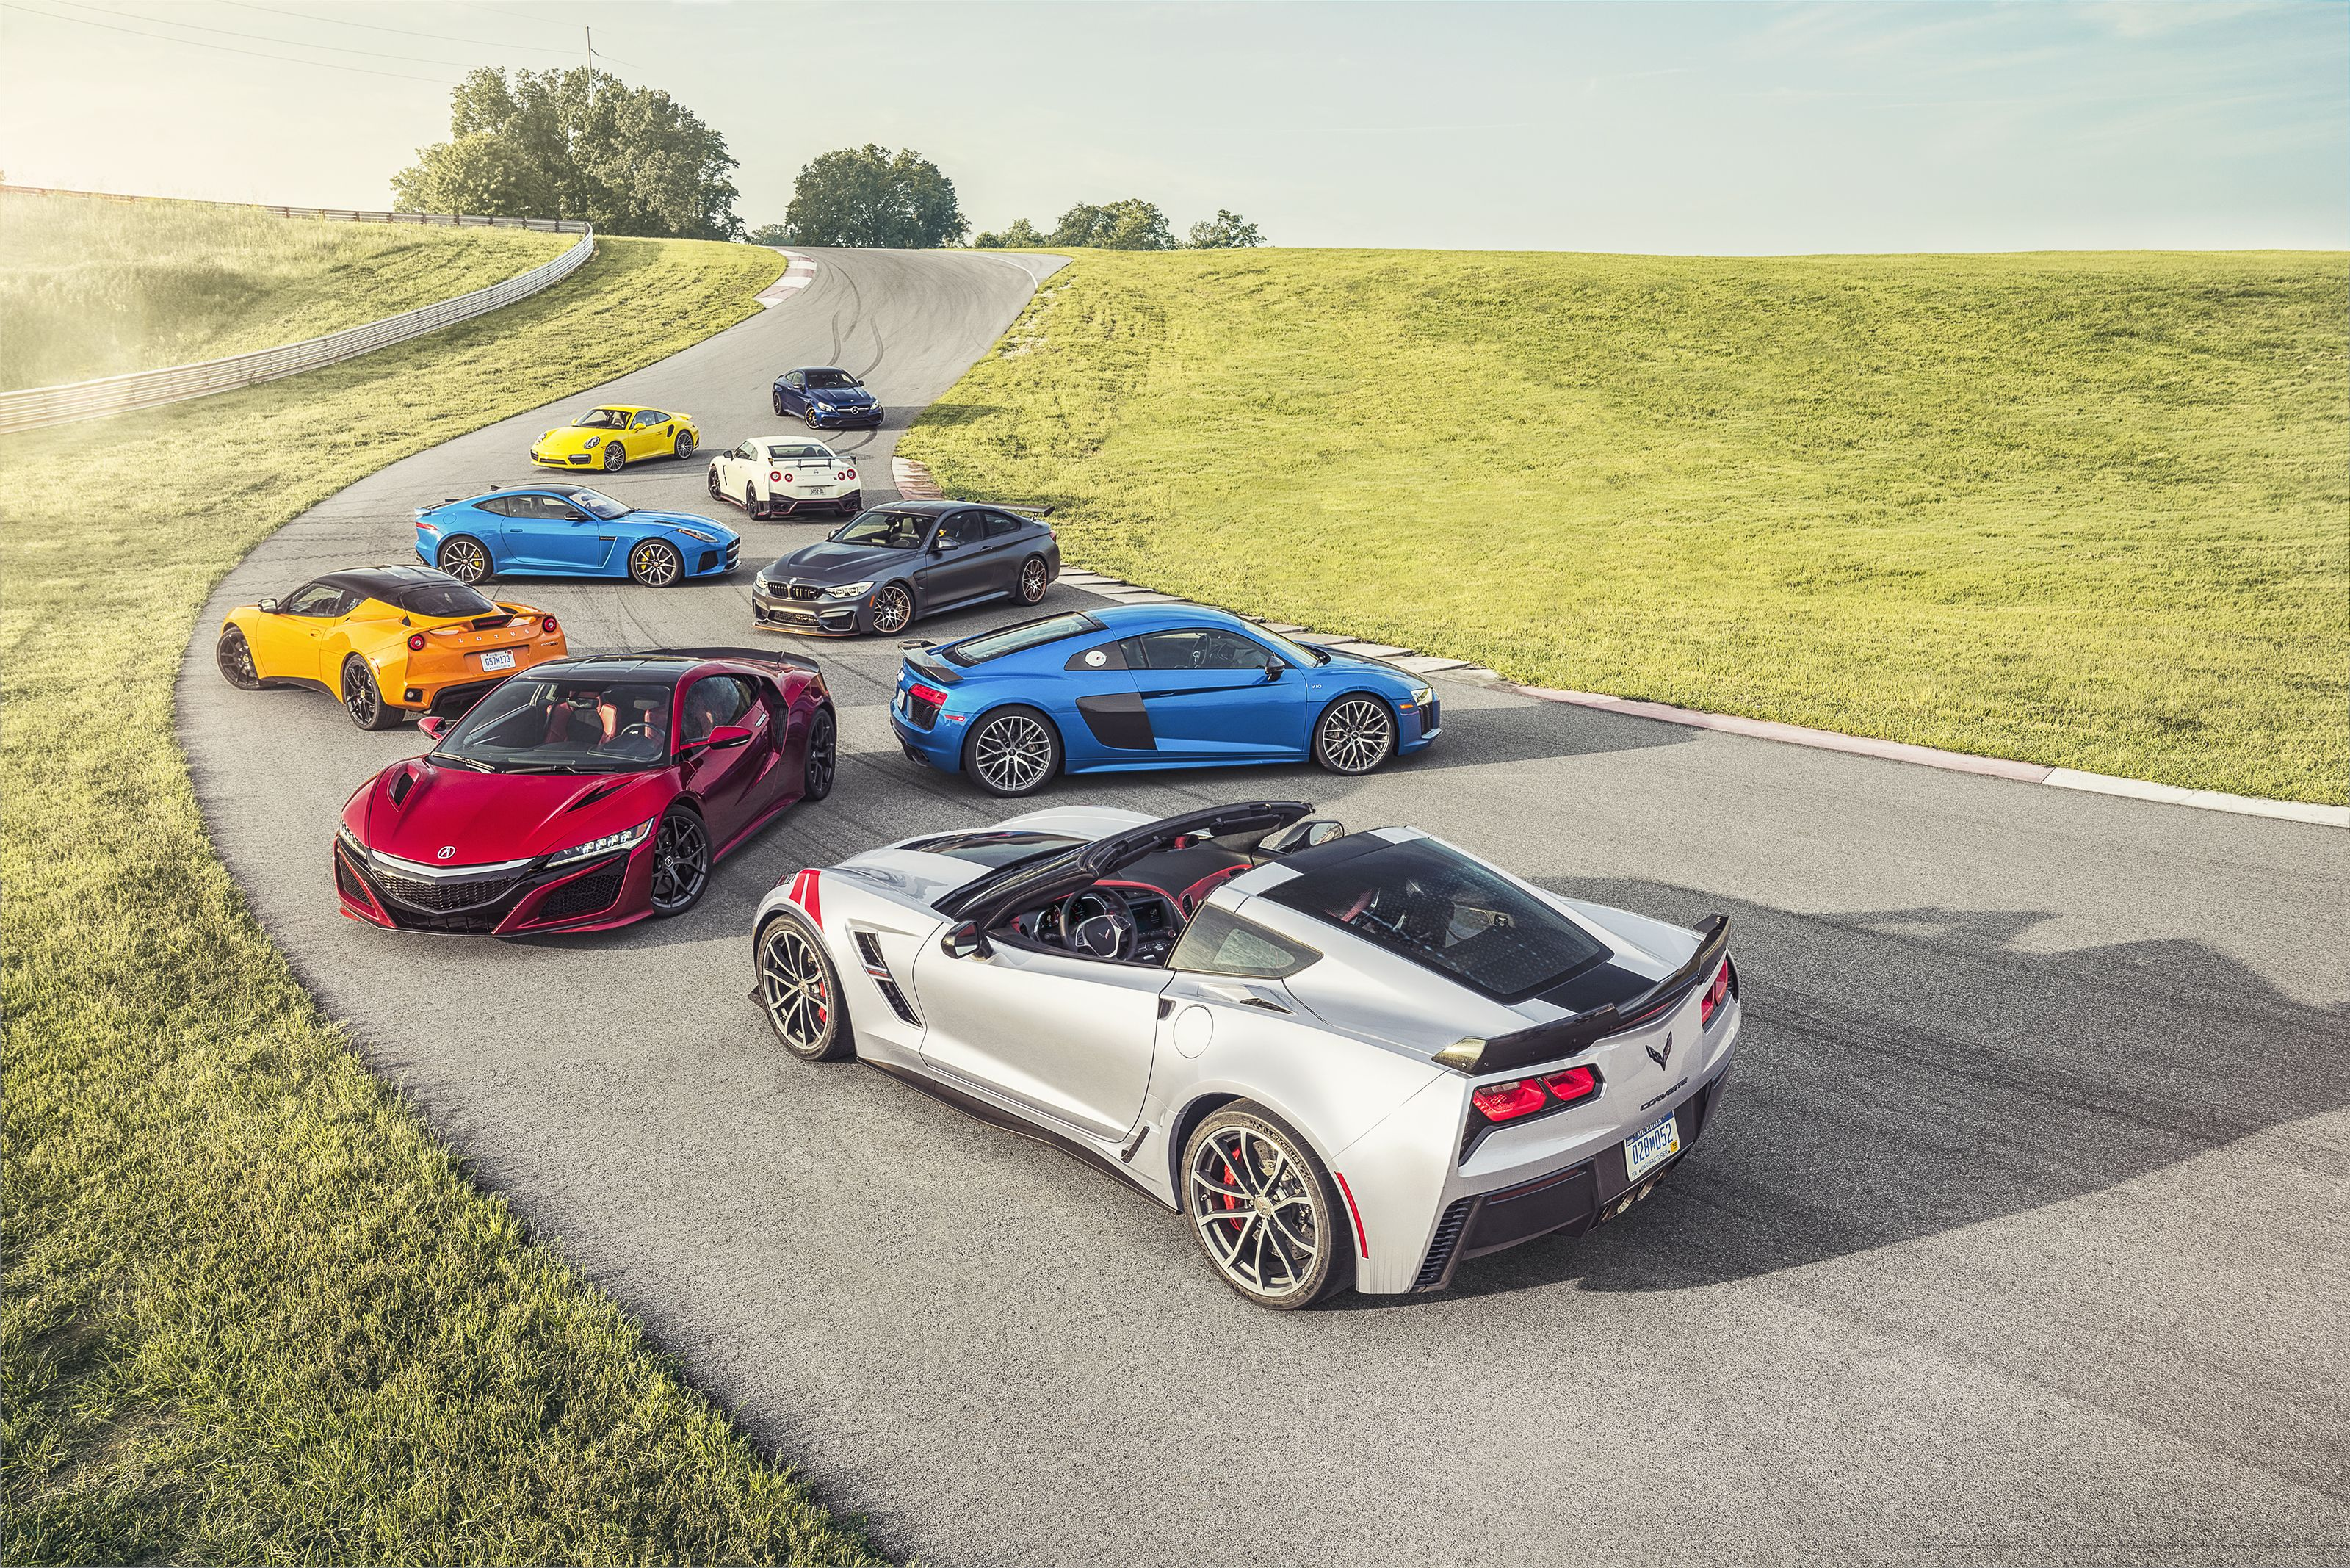 2017 Best Performance Car of the Year - 2017 Acura NSX Named